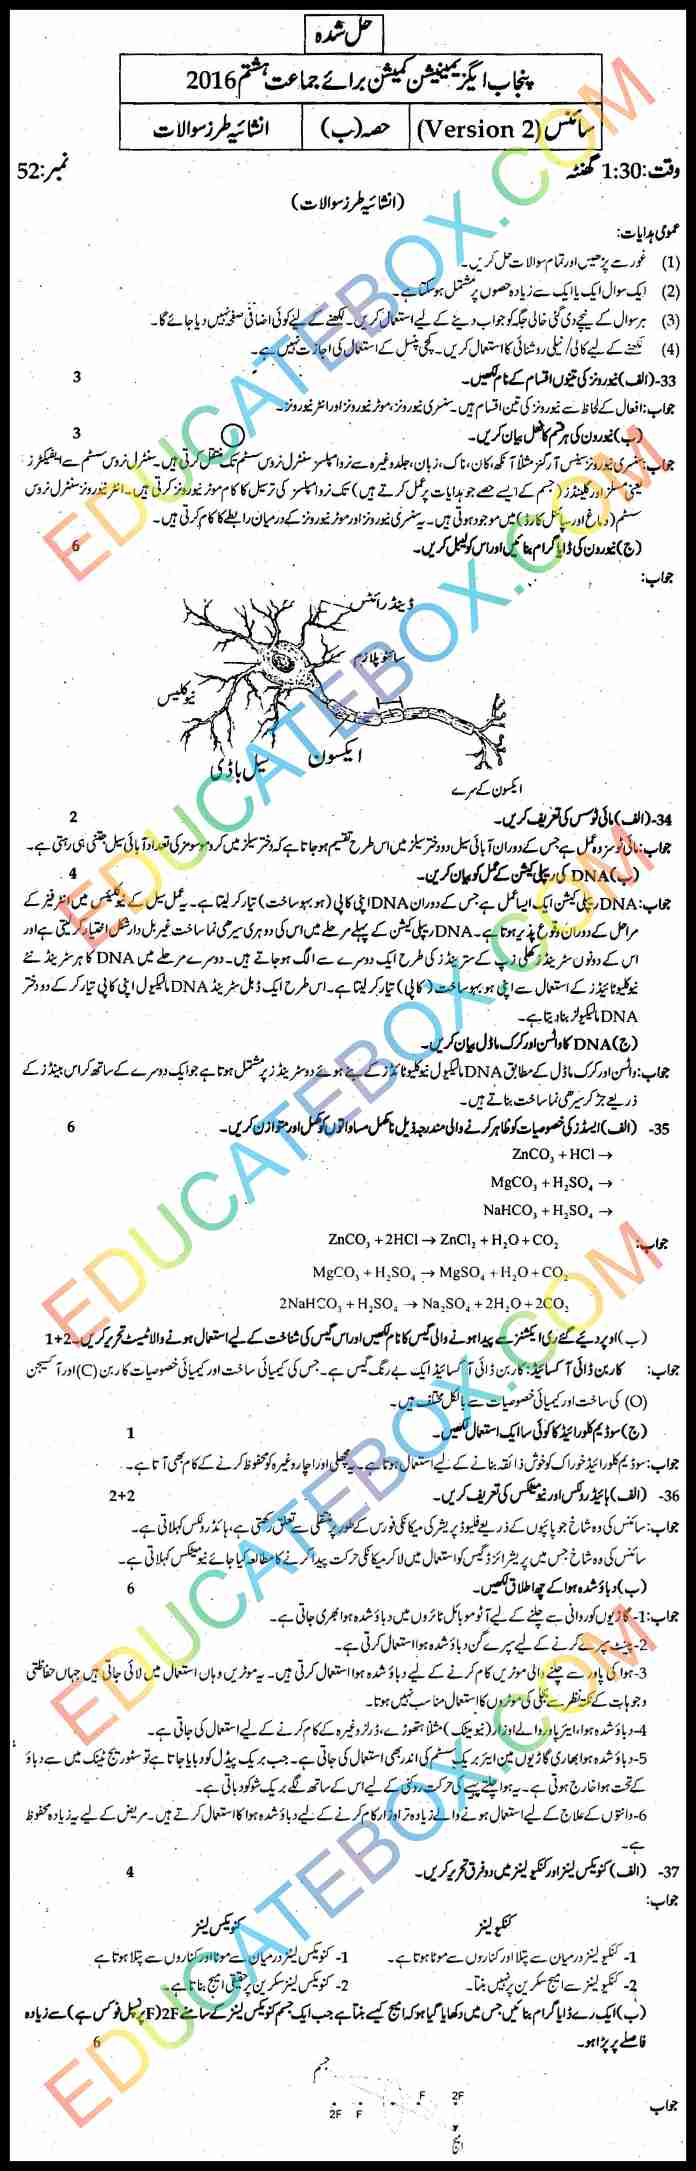 Past Paper 8th Class Science 2016 Solved Paper Punjab Board (PEC) Subjective Type Version 2 اپ ٹو ڈیٹ پیپر آٹھویں کلاس سائنس 2016 حل شدہ پیپر پنجاب بورڈ سبجیکٹیو ٹائپ۔ ورژن2